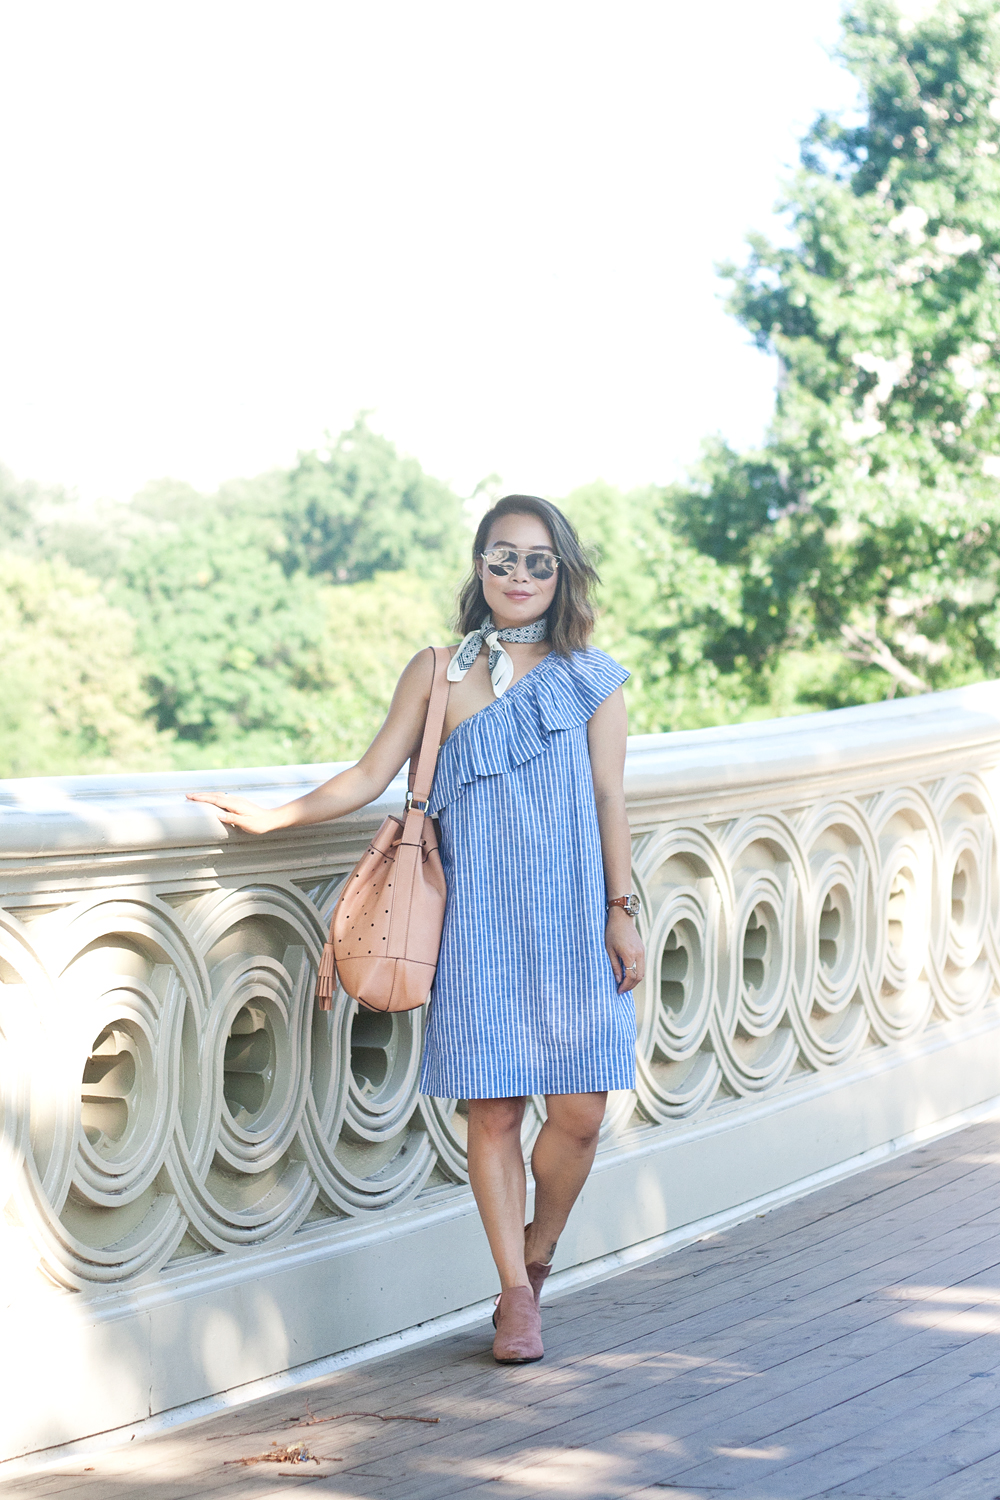 04centralpark-nyc-bowbridge-fashion-style-travel